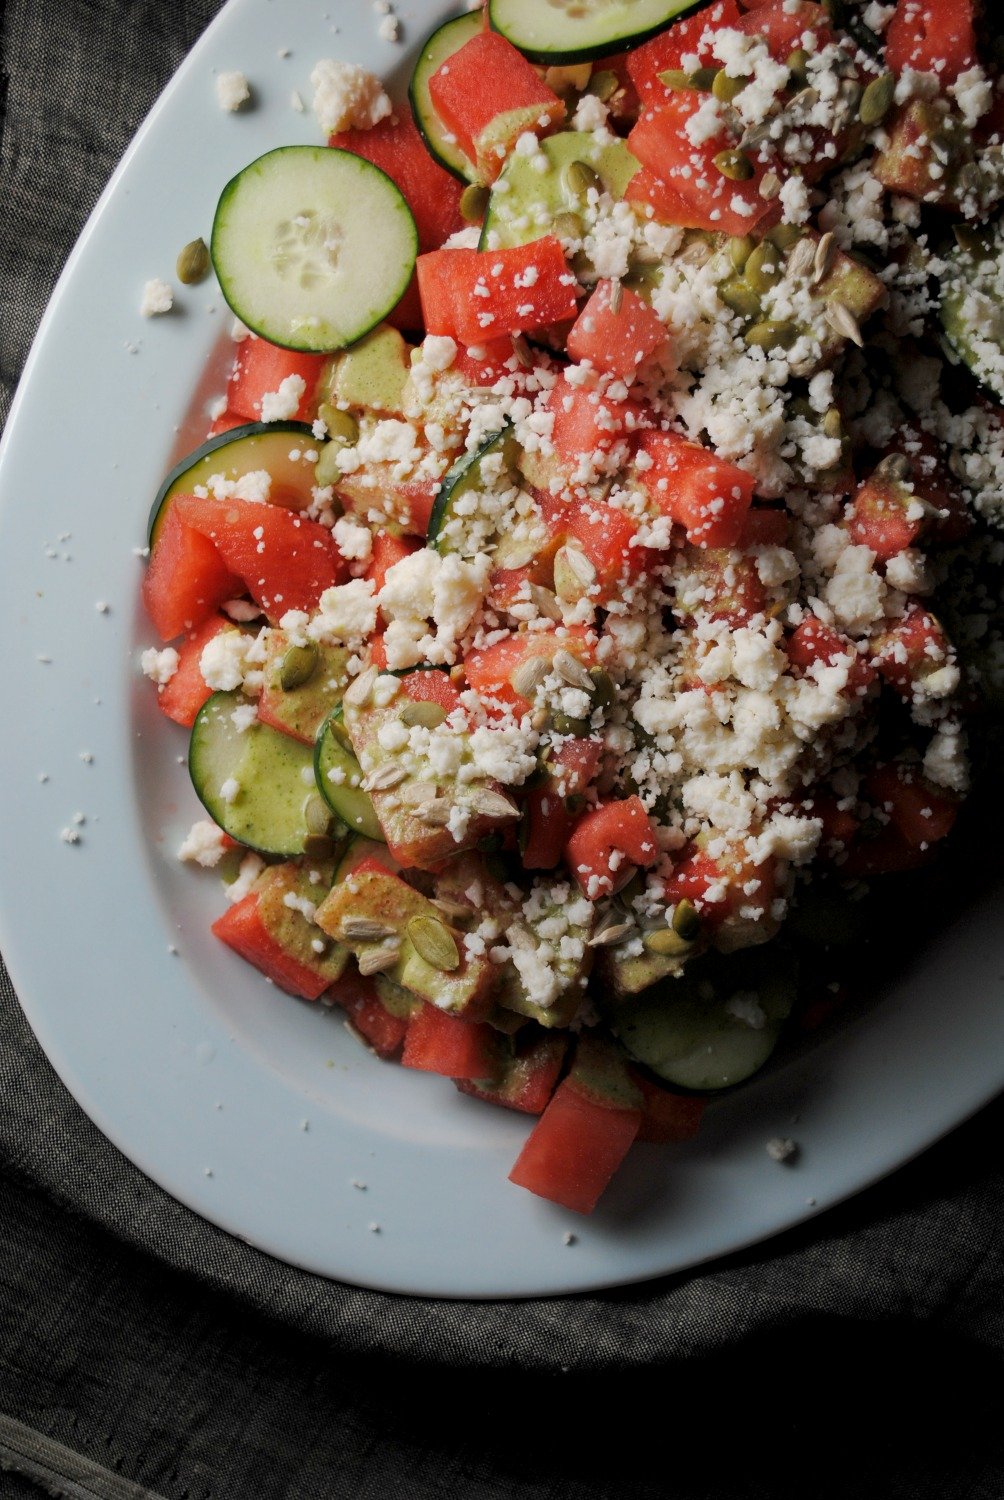 Watermelon Cucumber Salad With Pepita Dressing